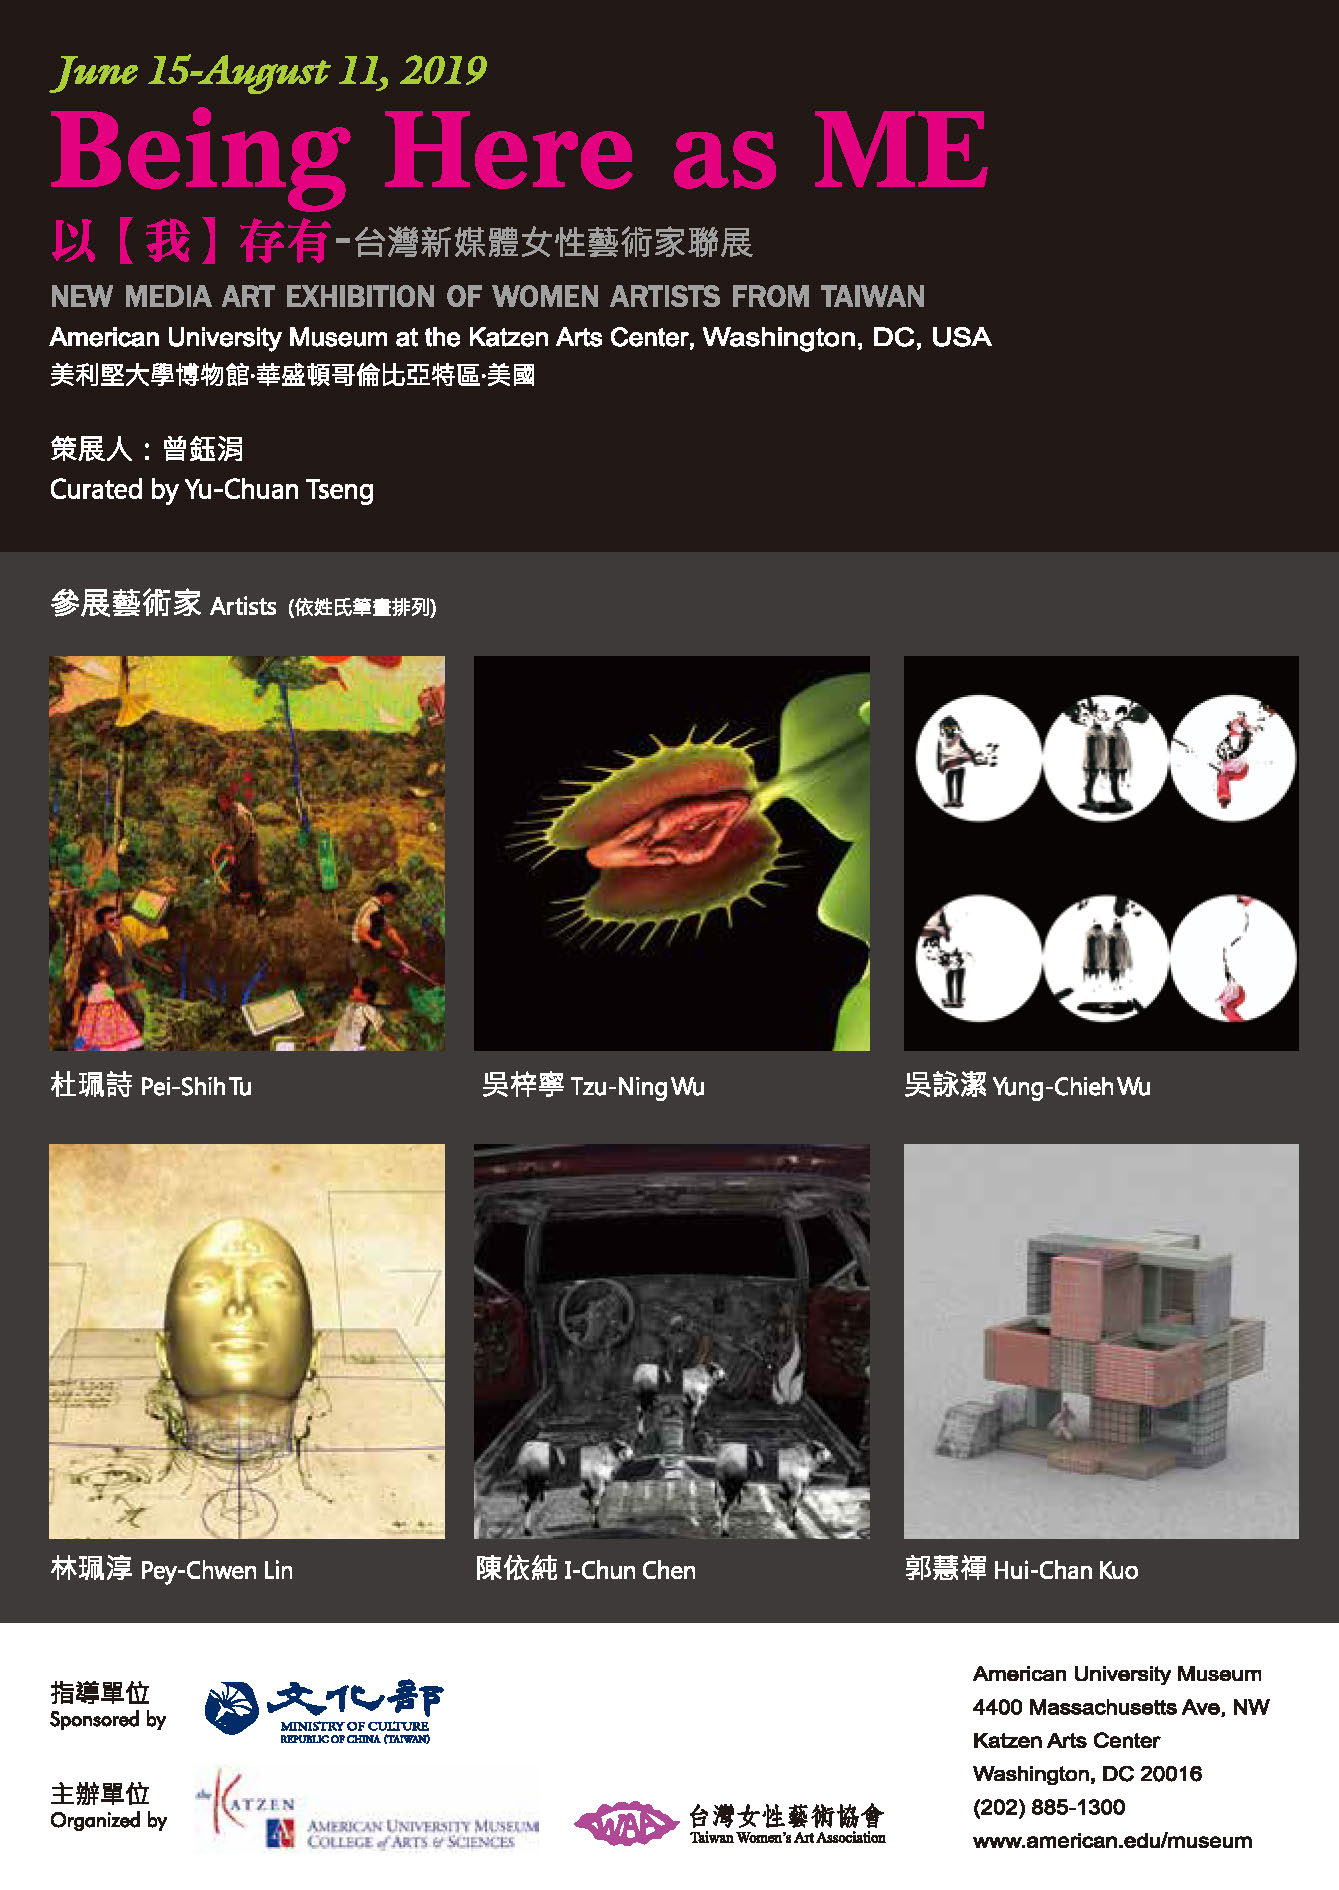 Being Here as ME: New Media Art Exhibition of Women Artists from Taiwan